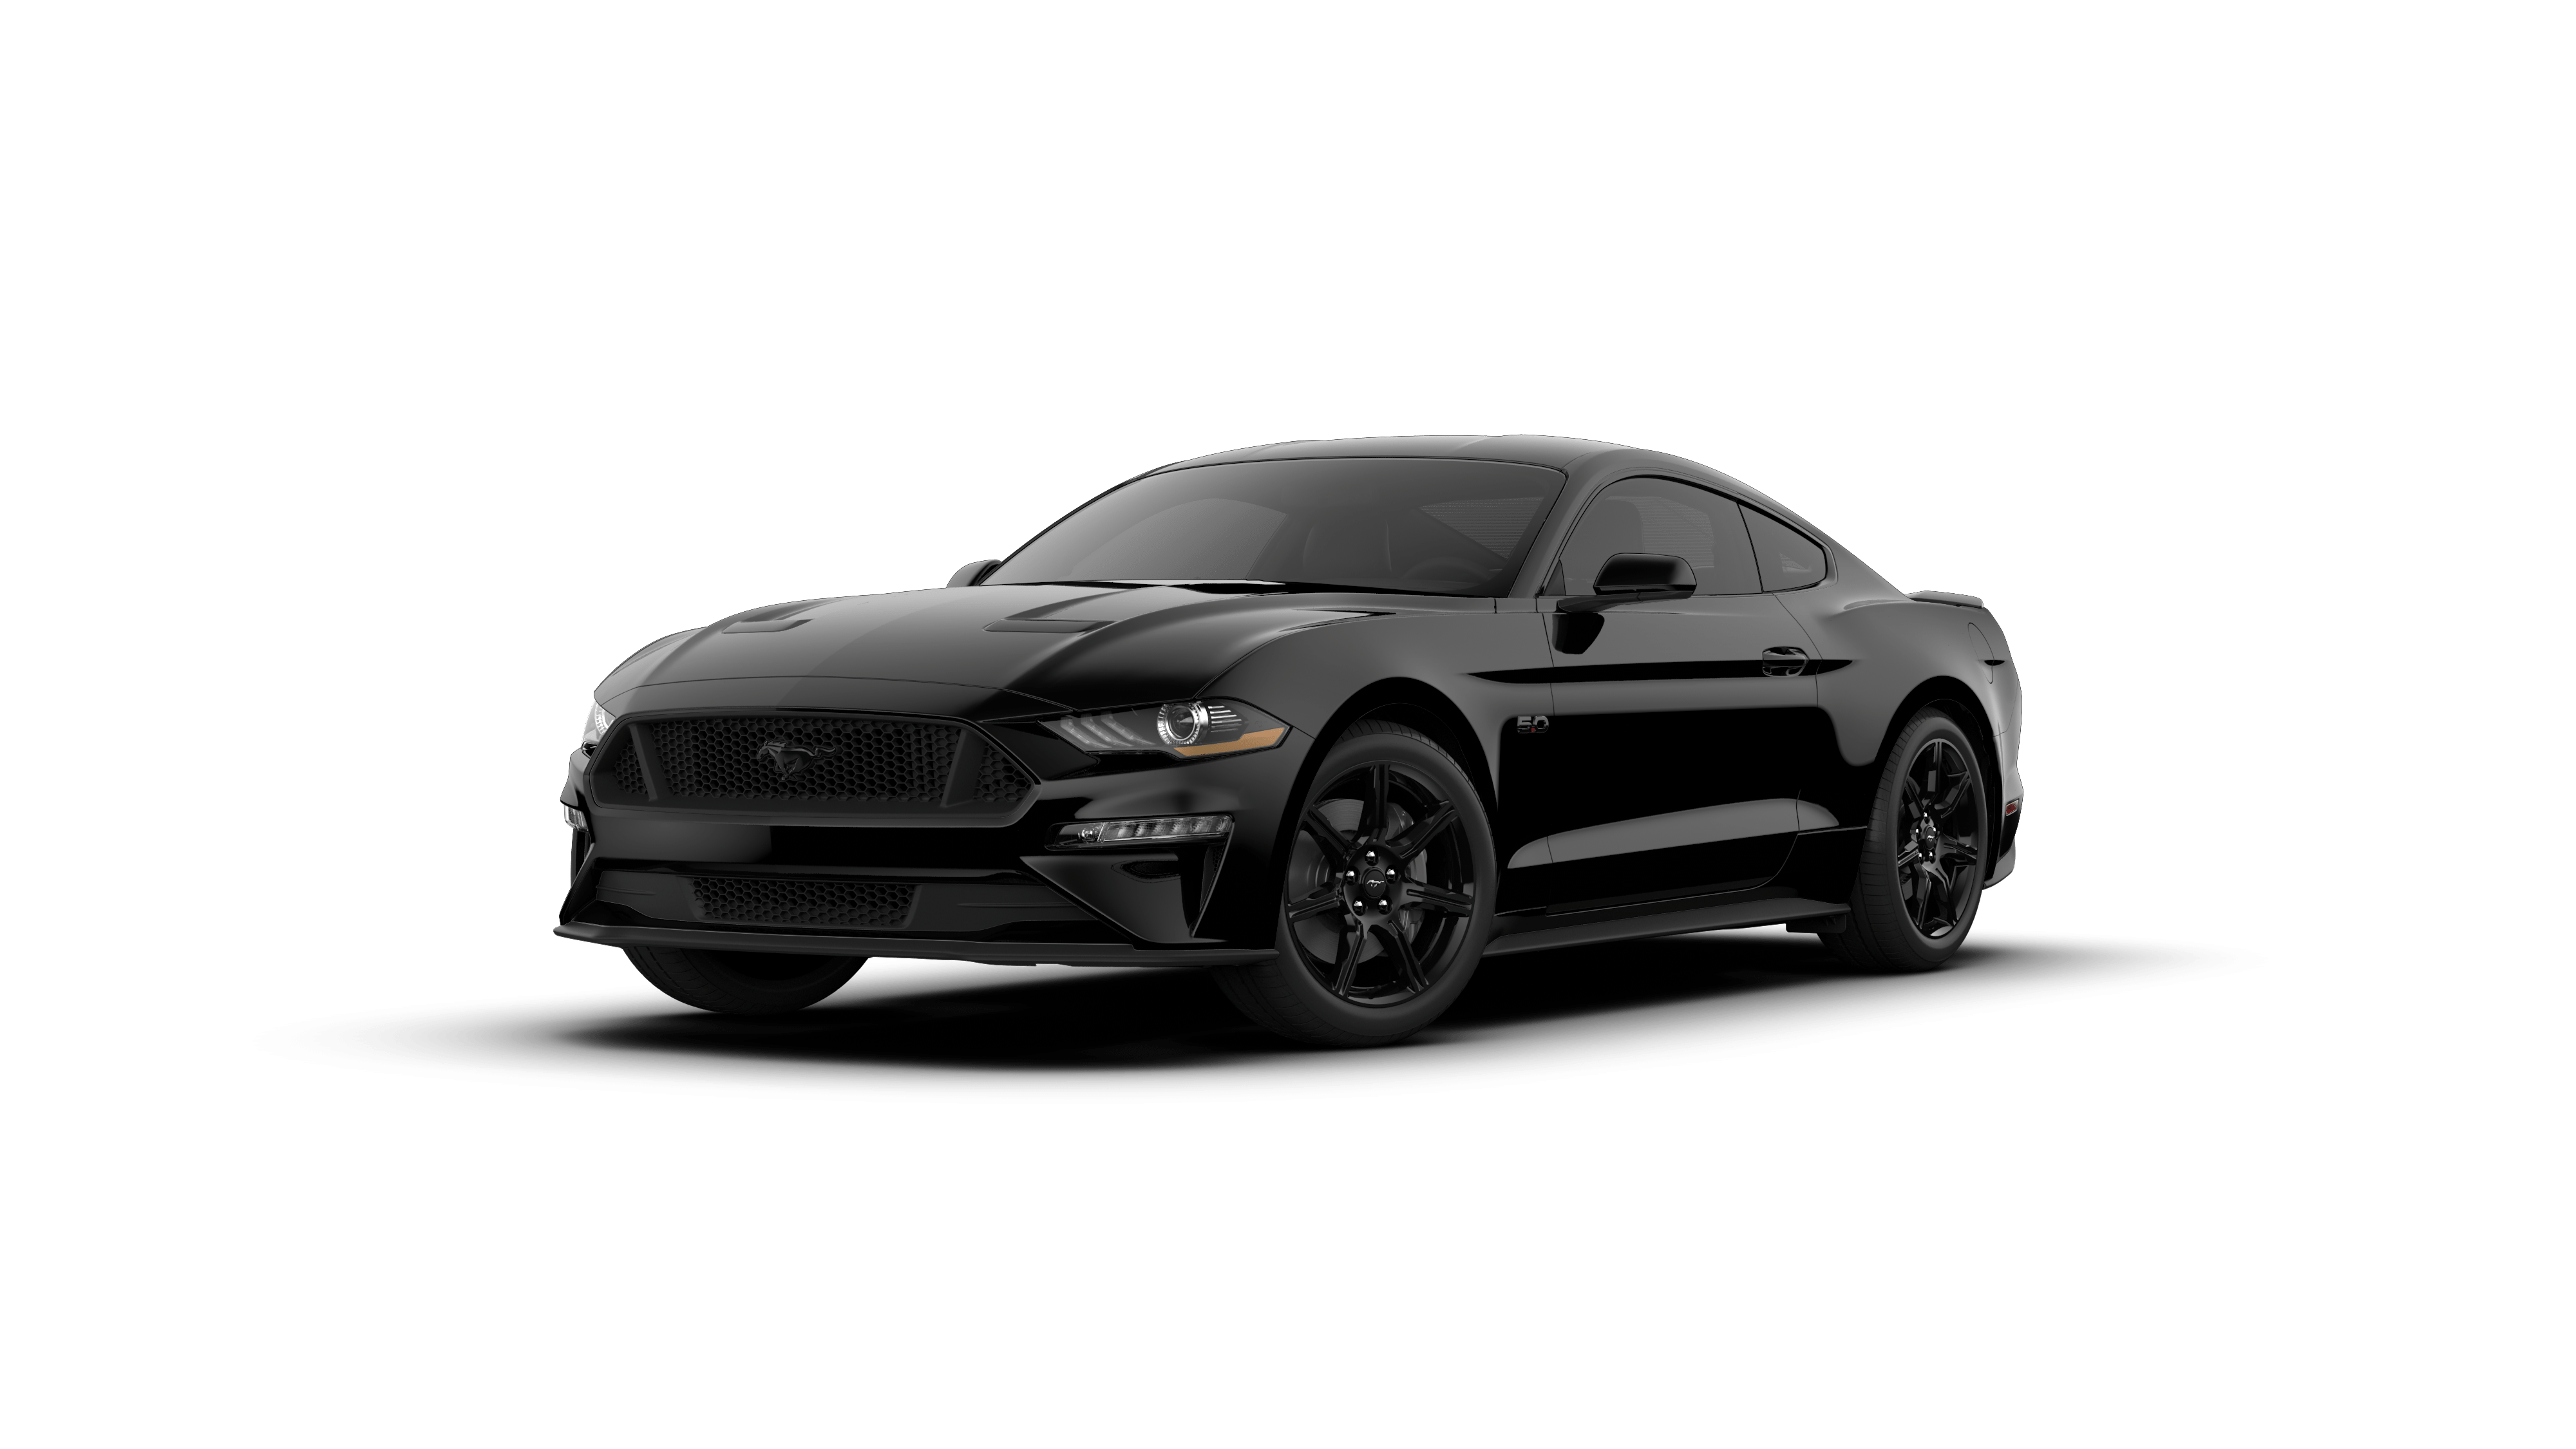 2019 ford mustang for sale in natrona heights 1fa6p8cf5k5117654 cochran ford. Black Bedroom Furniture Sets. Home Design Ideas